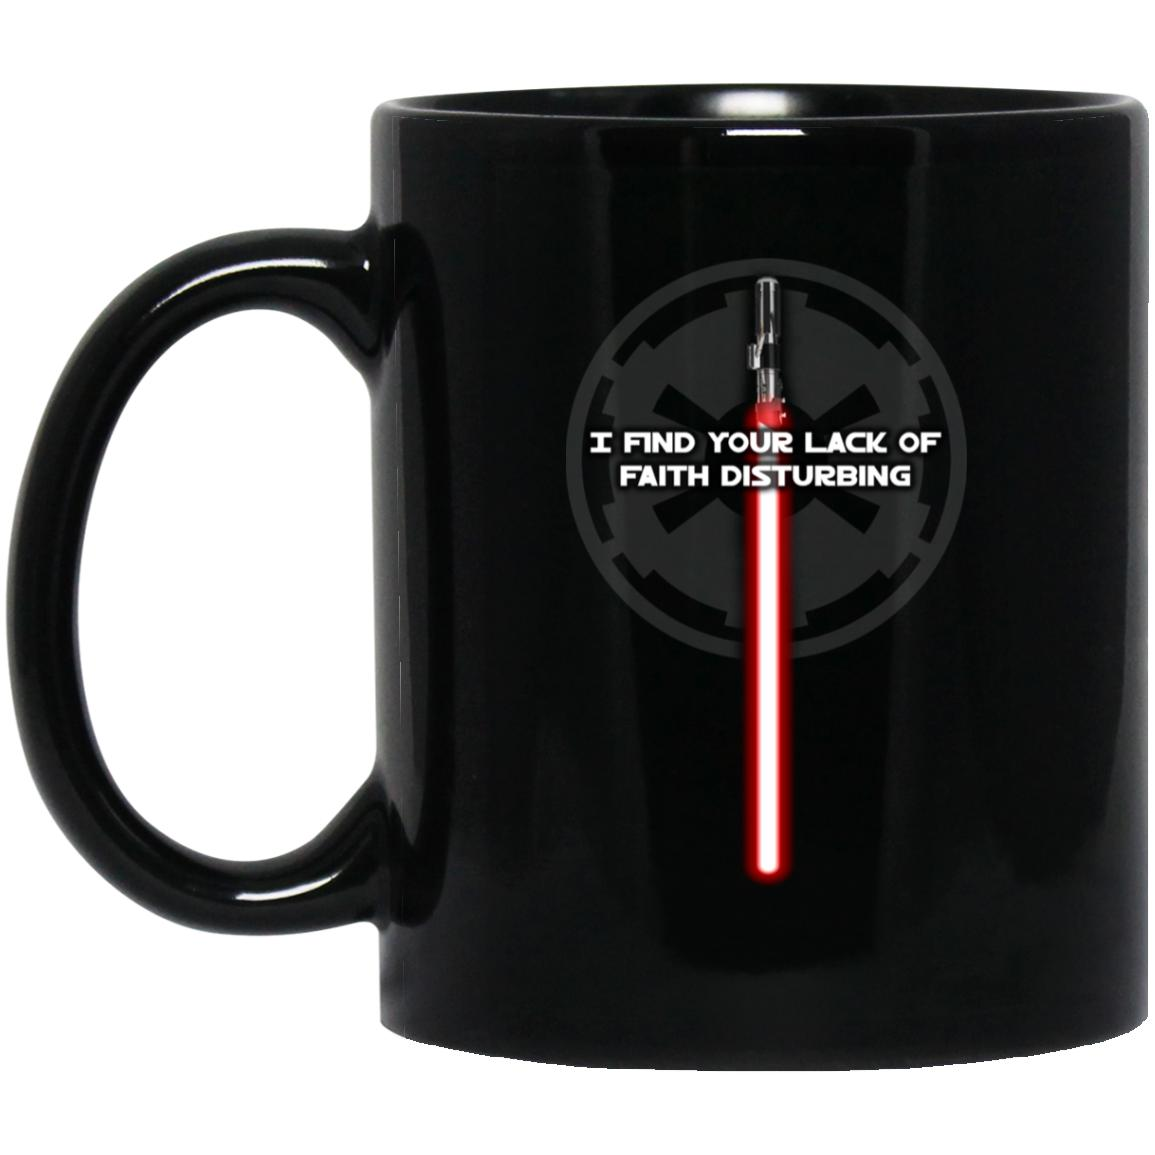 I Find Your Lack of Faith Disturbing - Mug